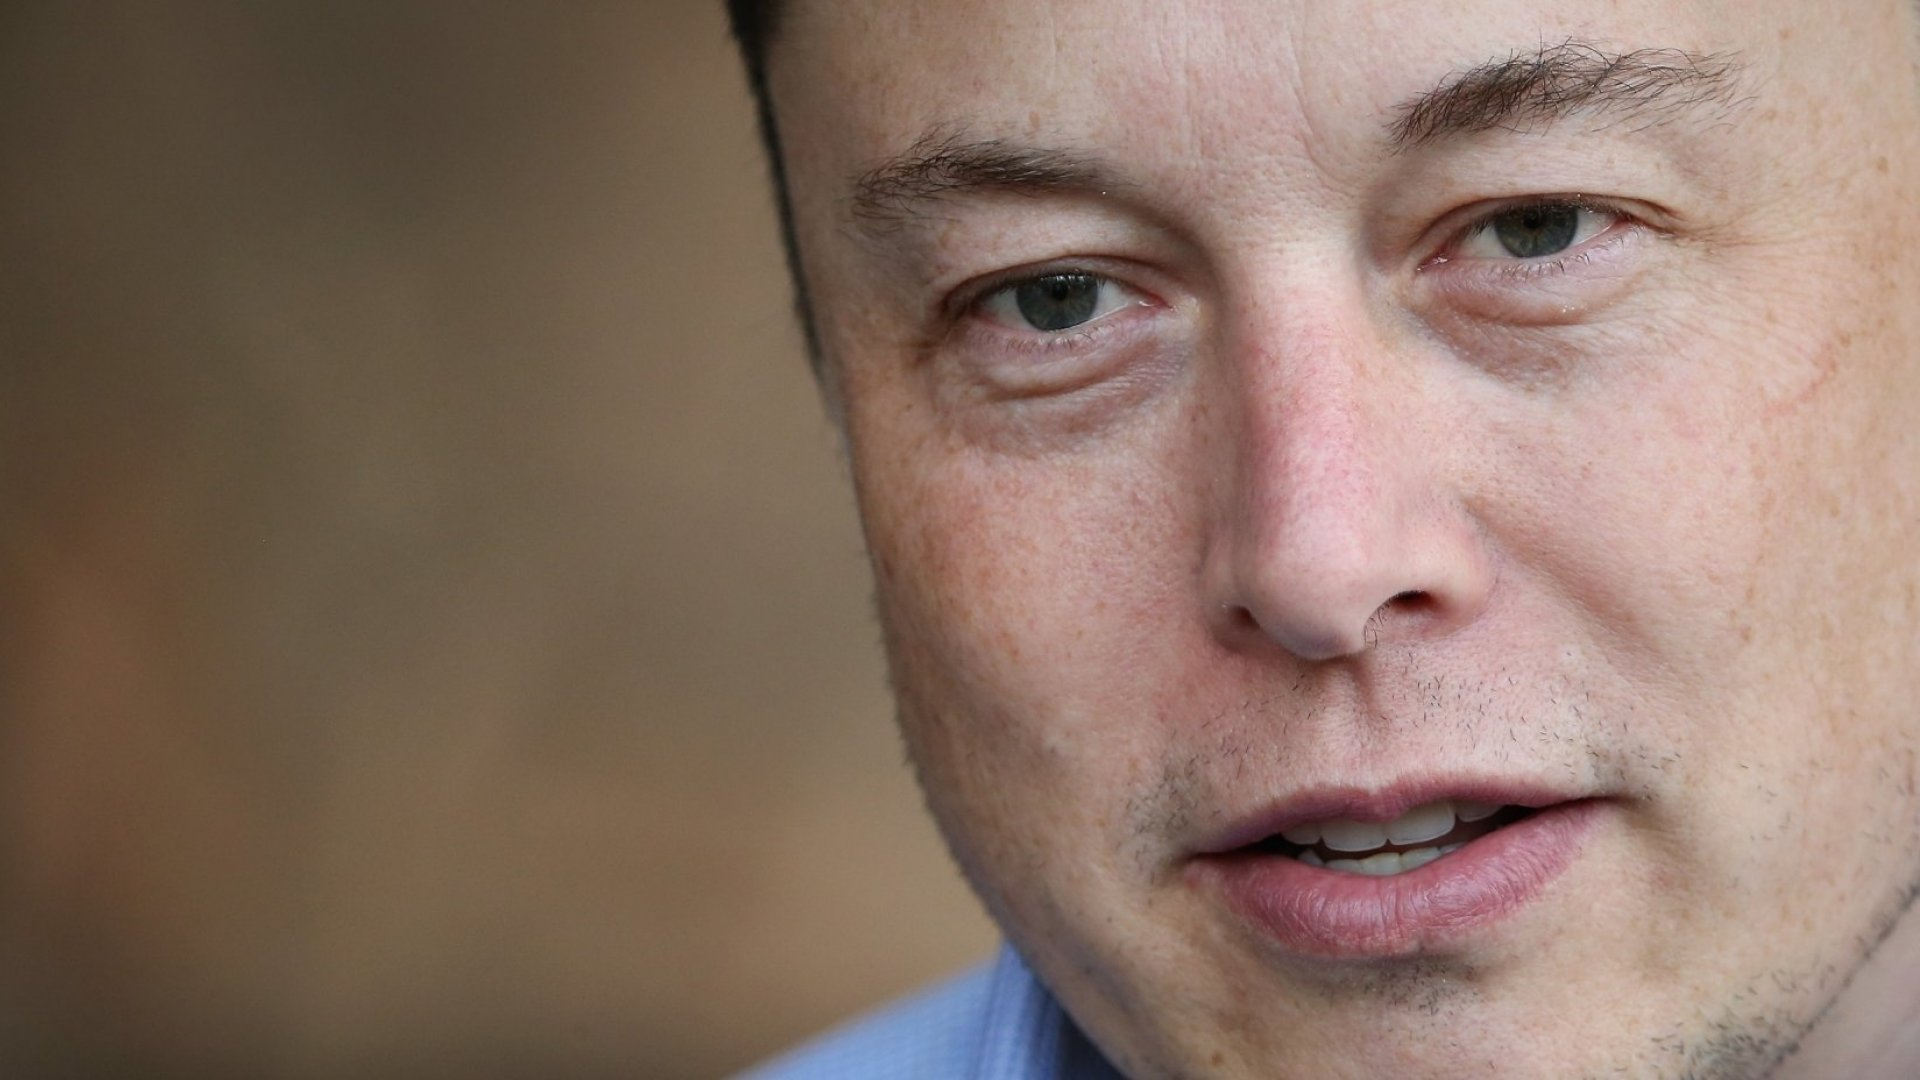 Want to Work at Tesla? Elon Musk Just Tweeted He Doesn't Care if You Even Graduated High School--and It Might Be One of the Smartest Things He's Ever Said